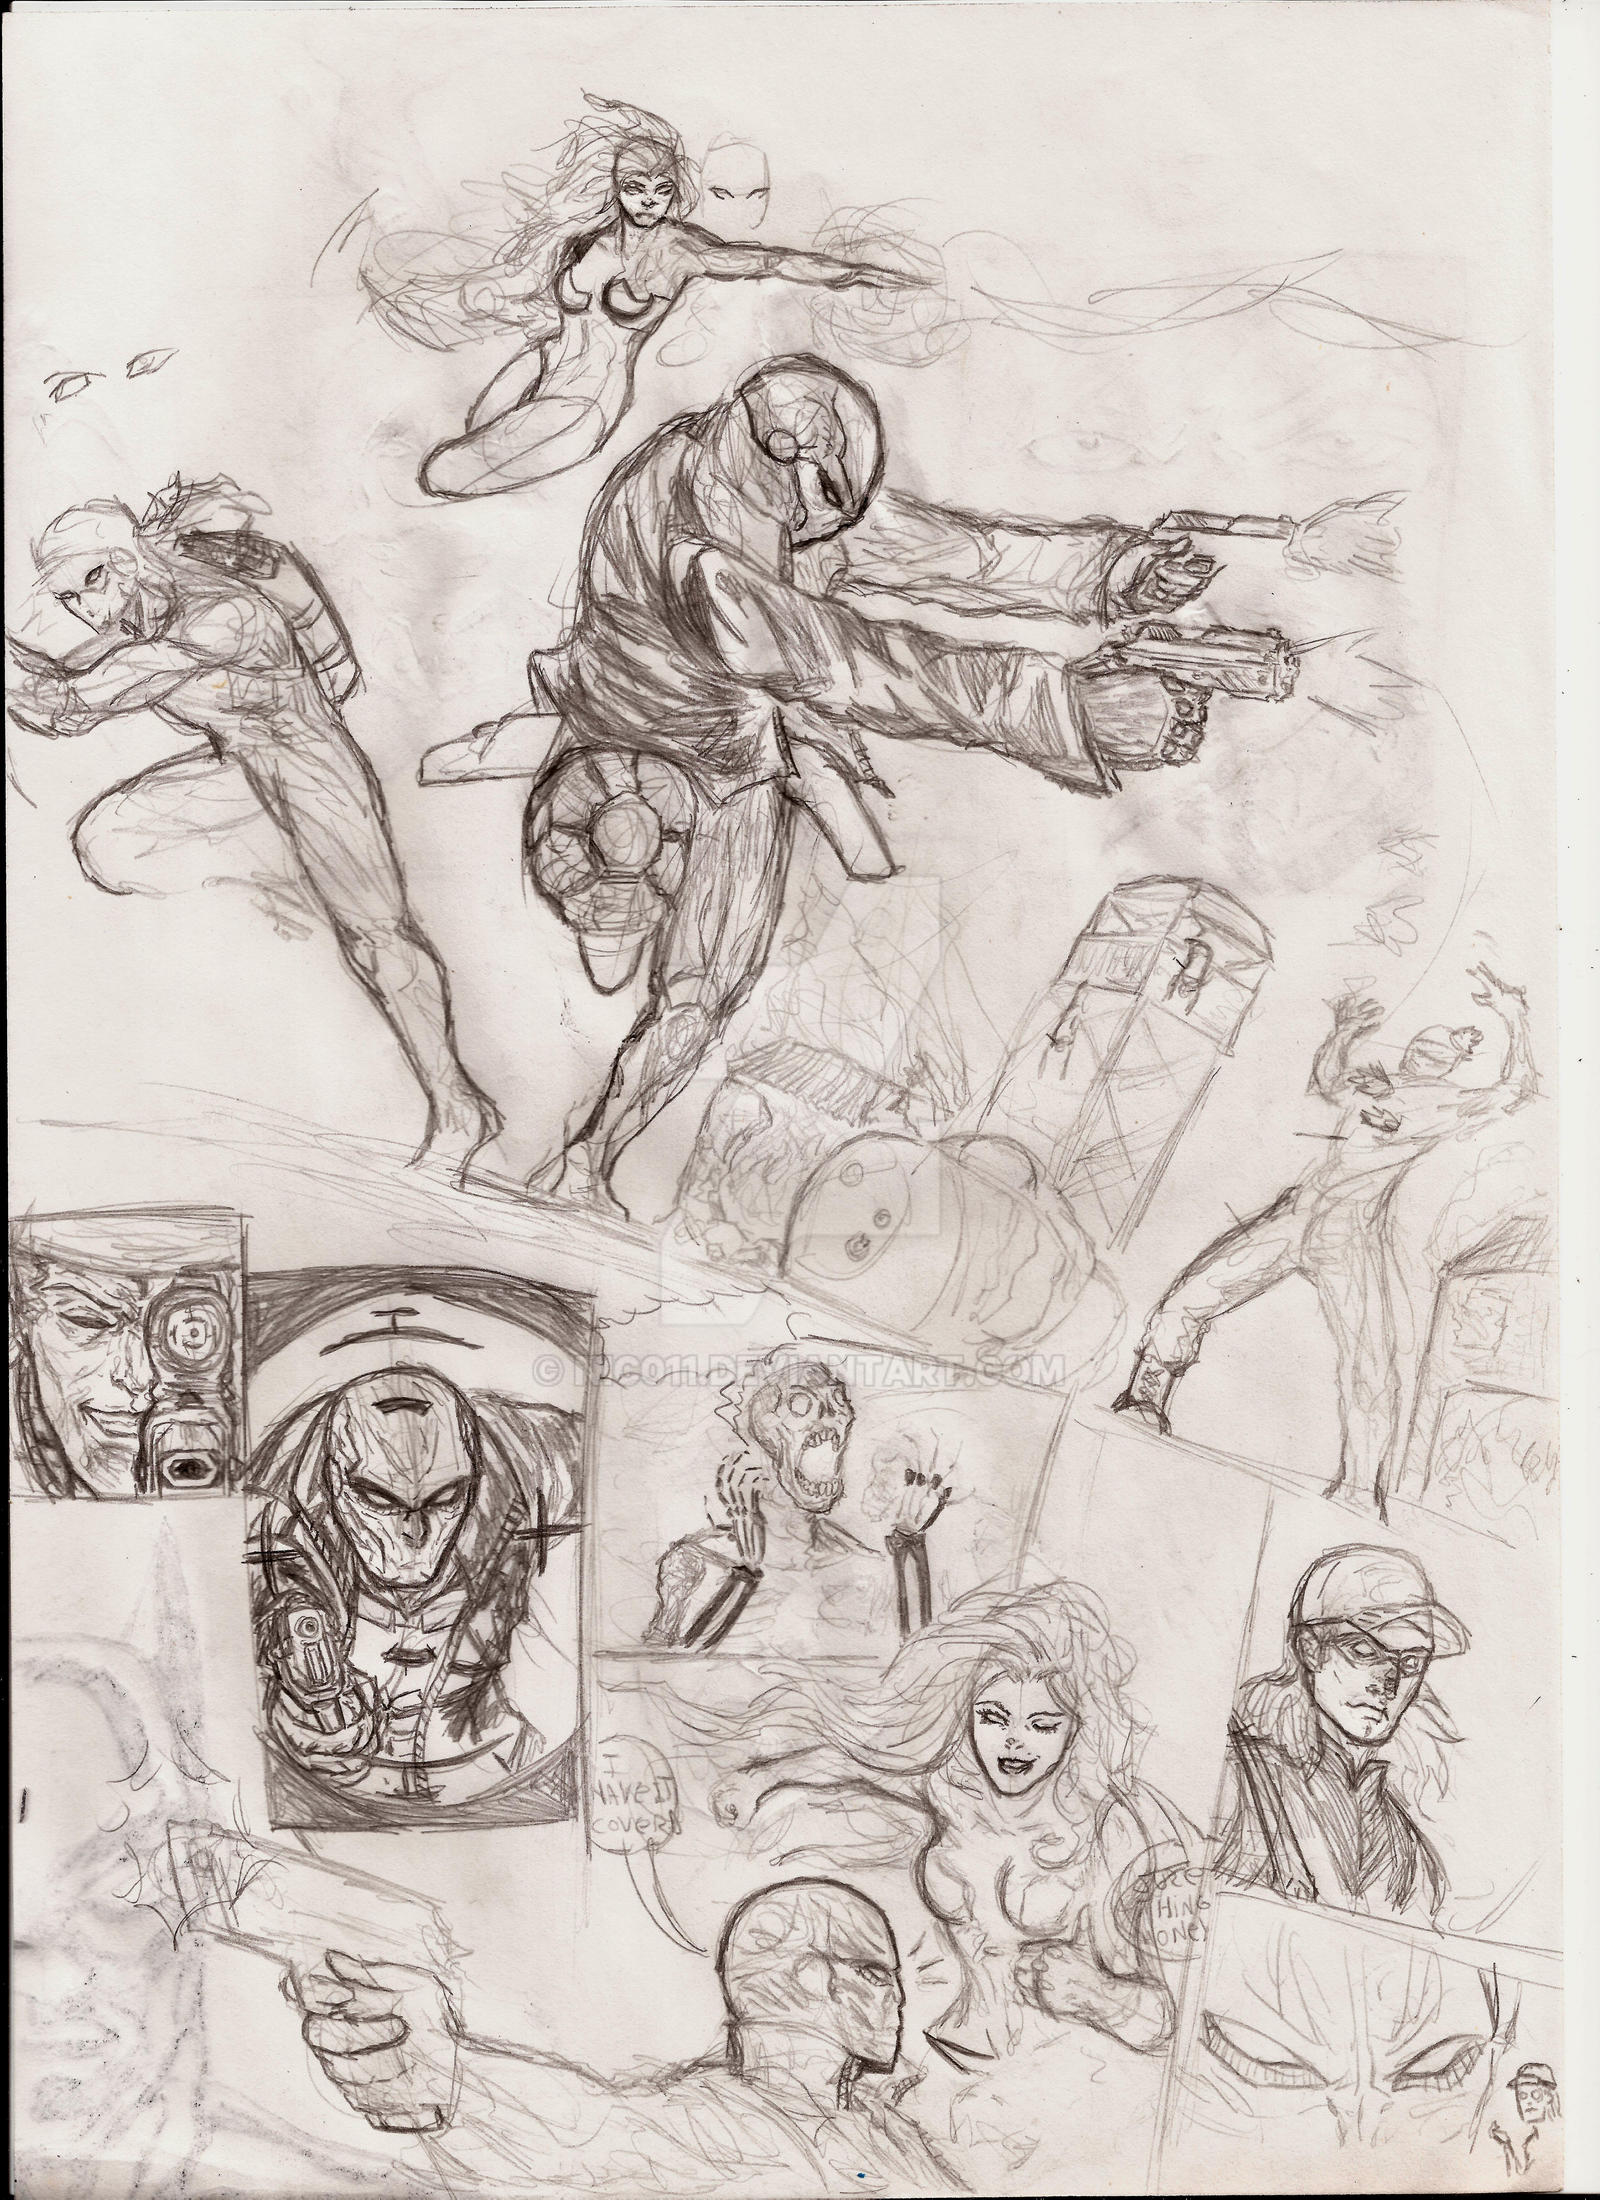 redhood and the Outlaws ranmdome comic page by nic011